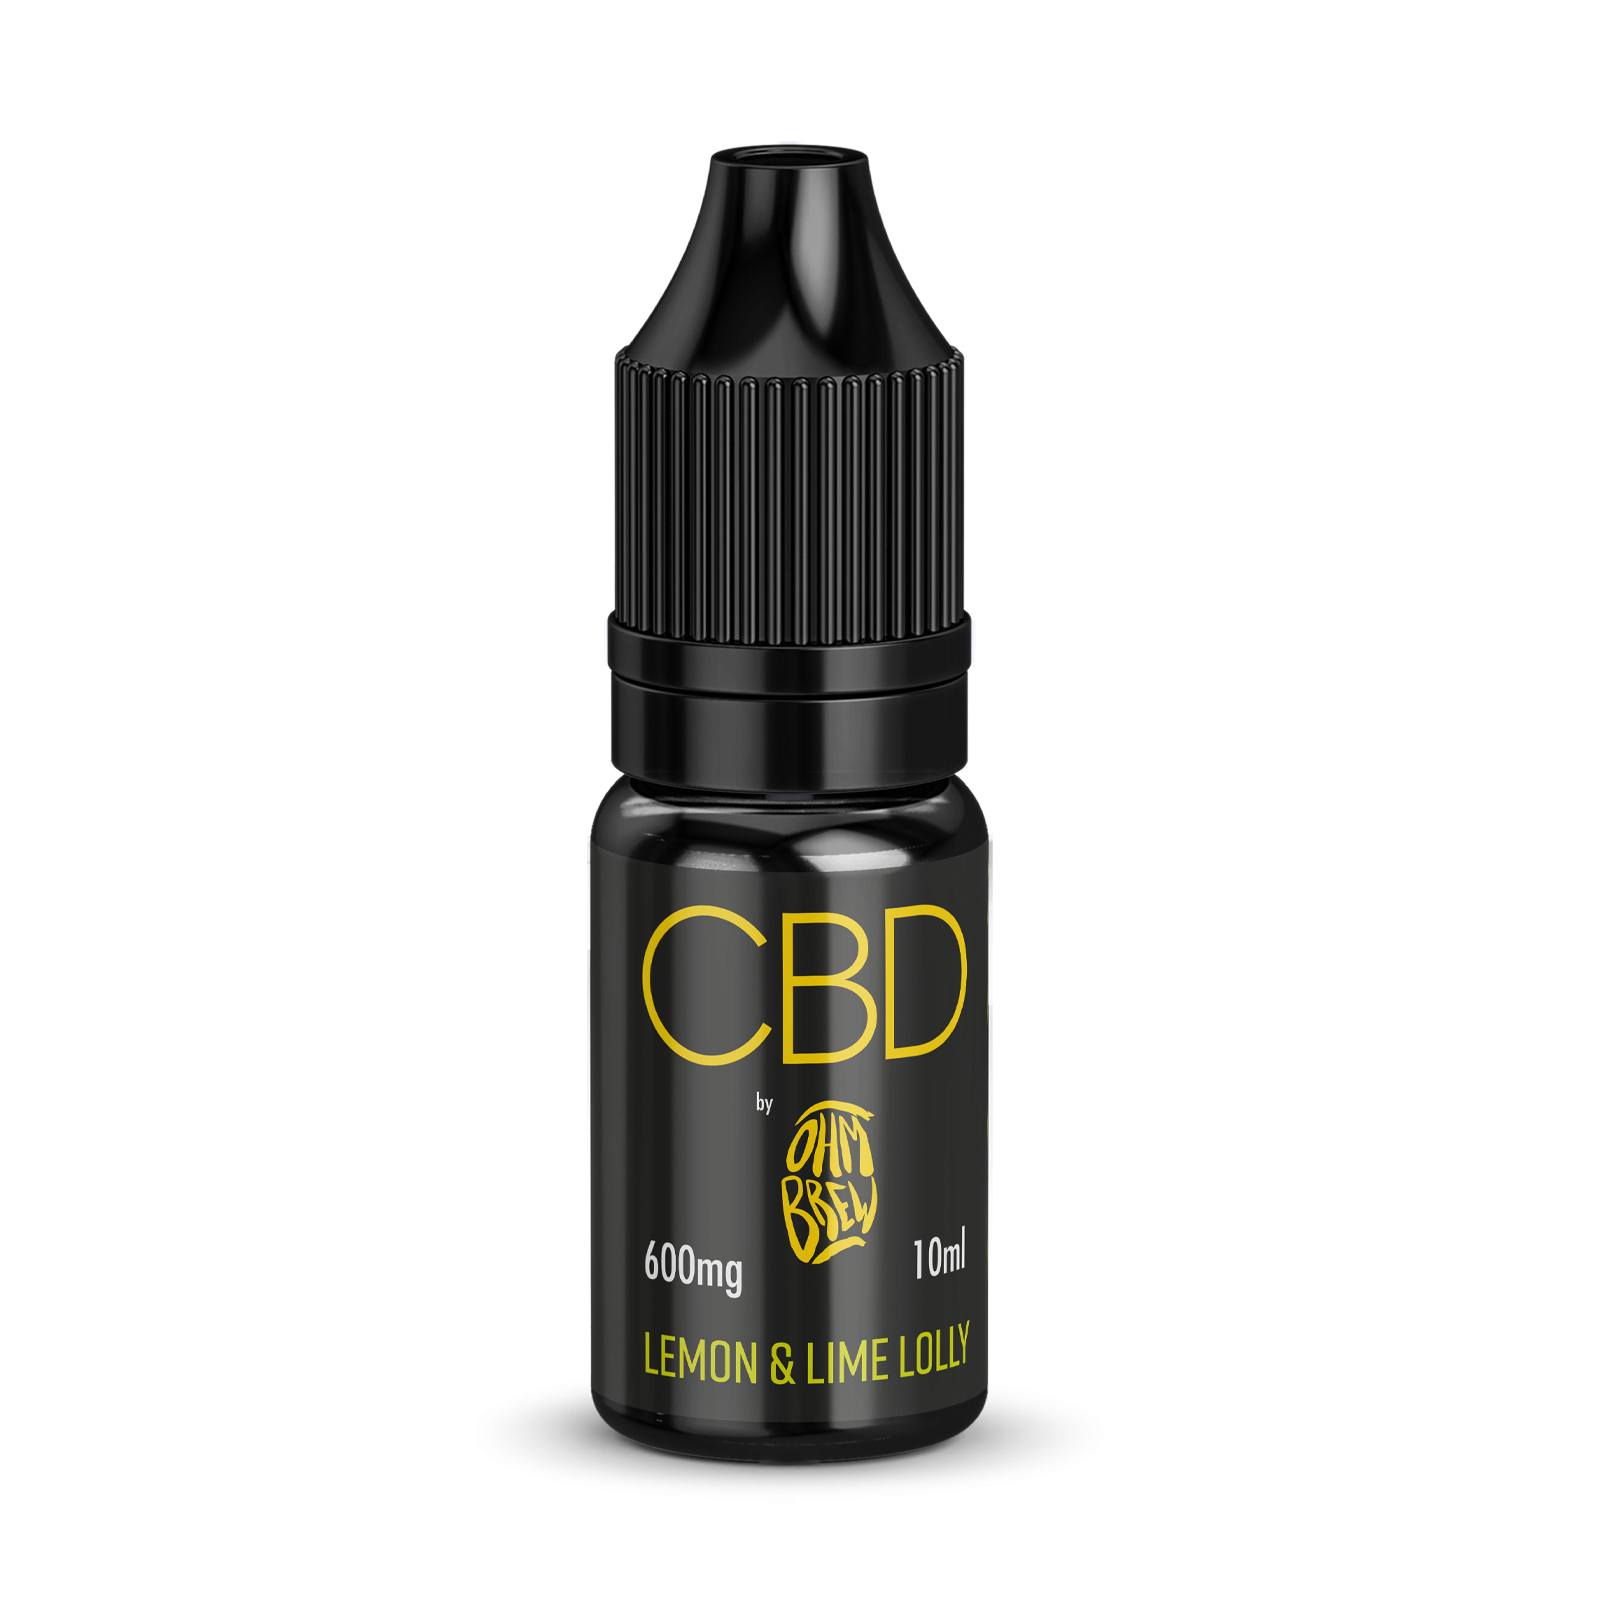 Ohm Brew Lemon & Lime Lolly CBD 600mg